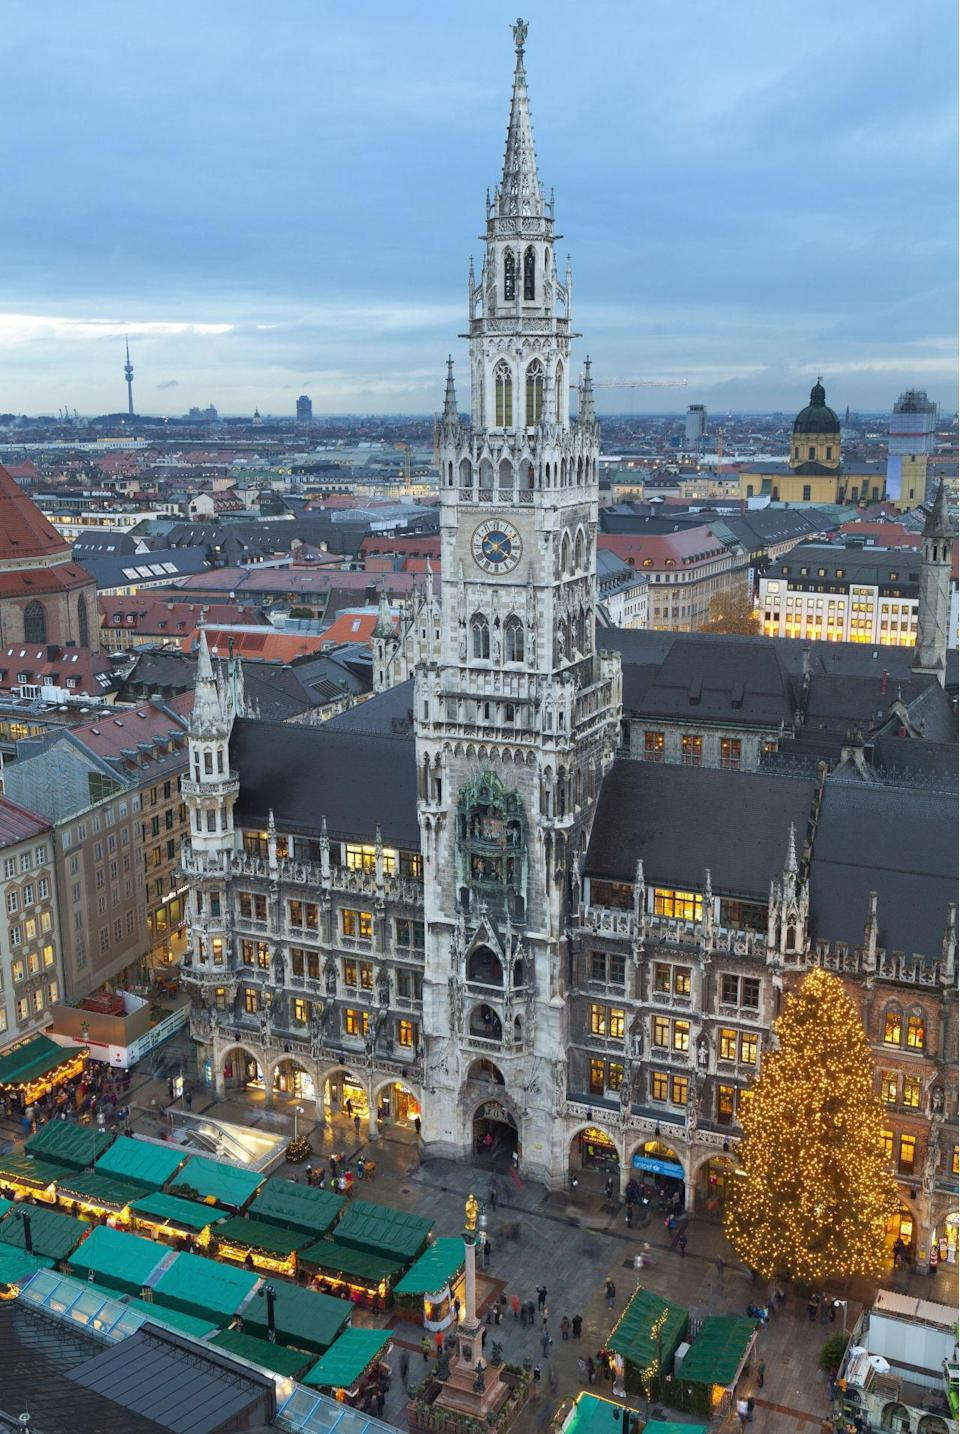 <p>The capital of the German state of Bavaria, Munich is the country's third largest city. It is a centre of arts, culture and technology. (Rex)</p>